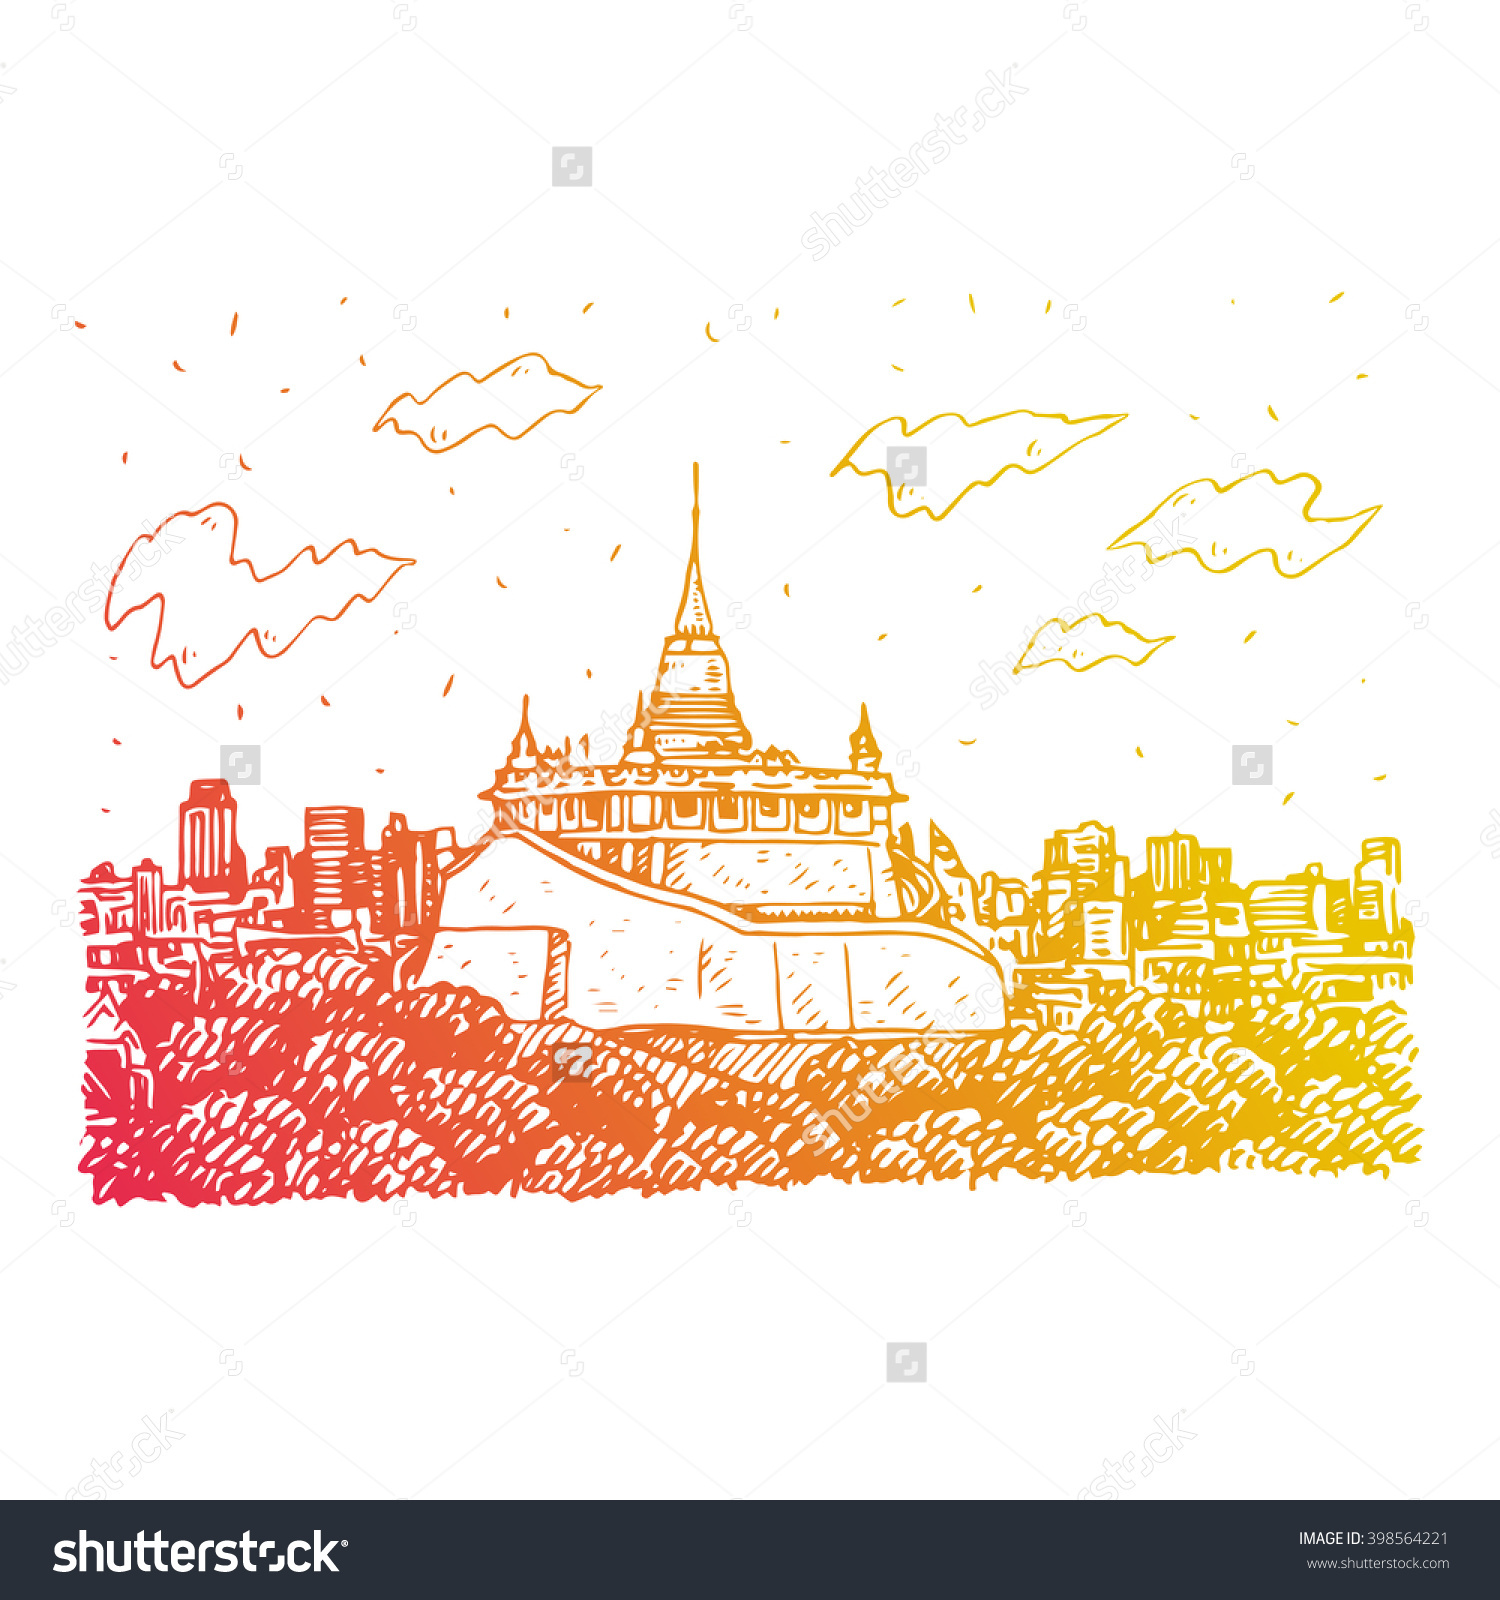 The Golden Mount At Wat Saket In Bangkok, Thailand. Sketch By Hand.